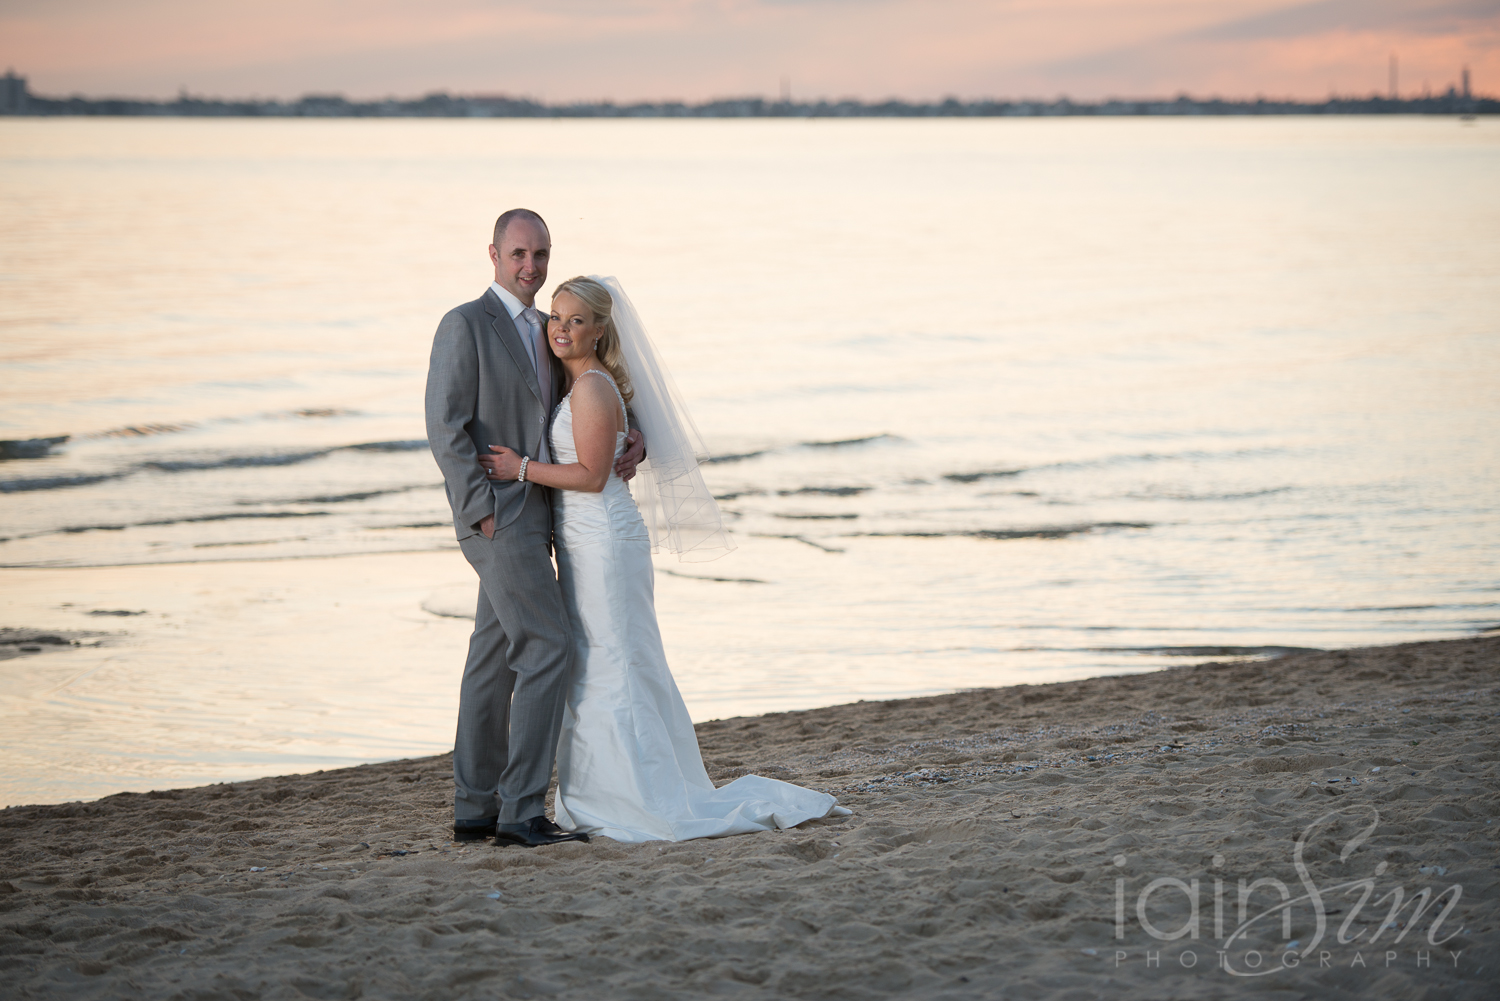 wpid-Justine-and-Steve-at-Waterfront-Port-Melbourne-by-Iain-Sim-Photography_028.jpg